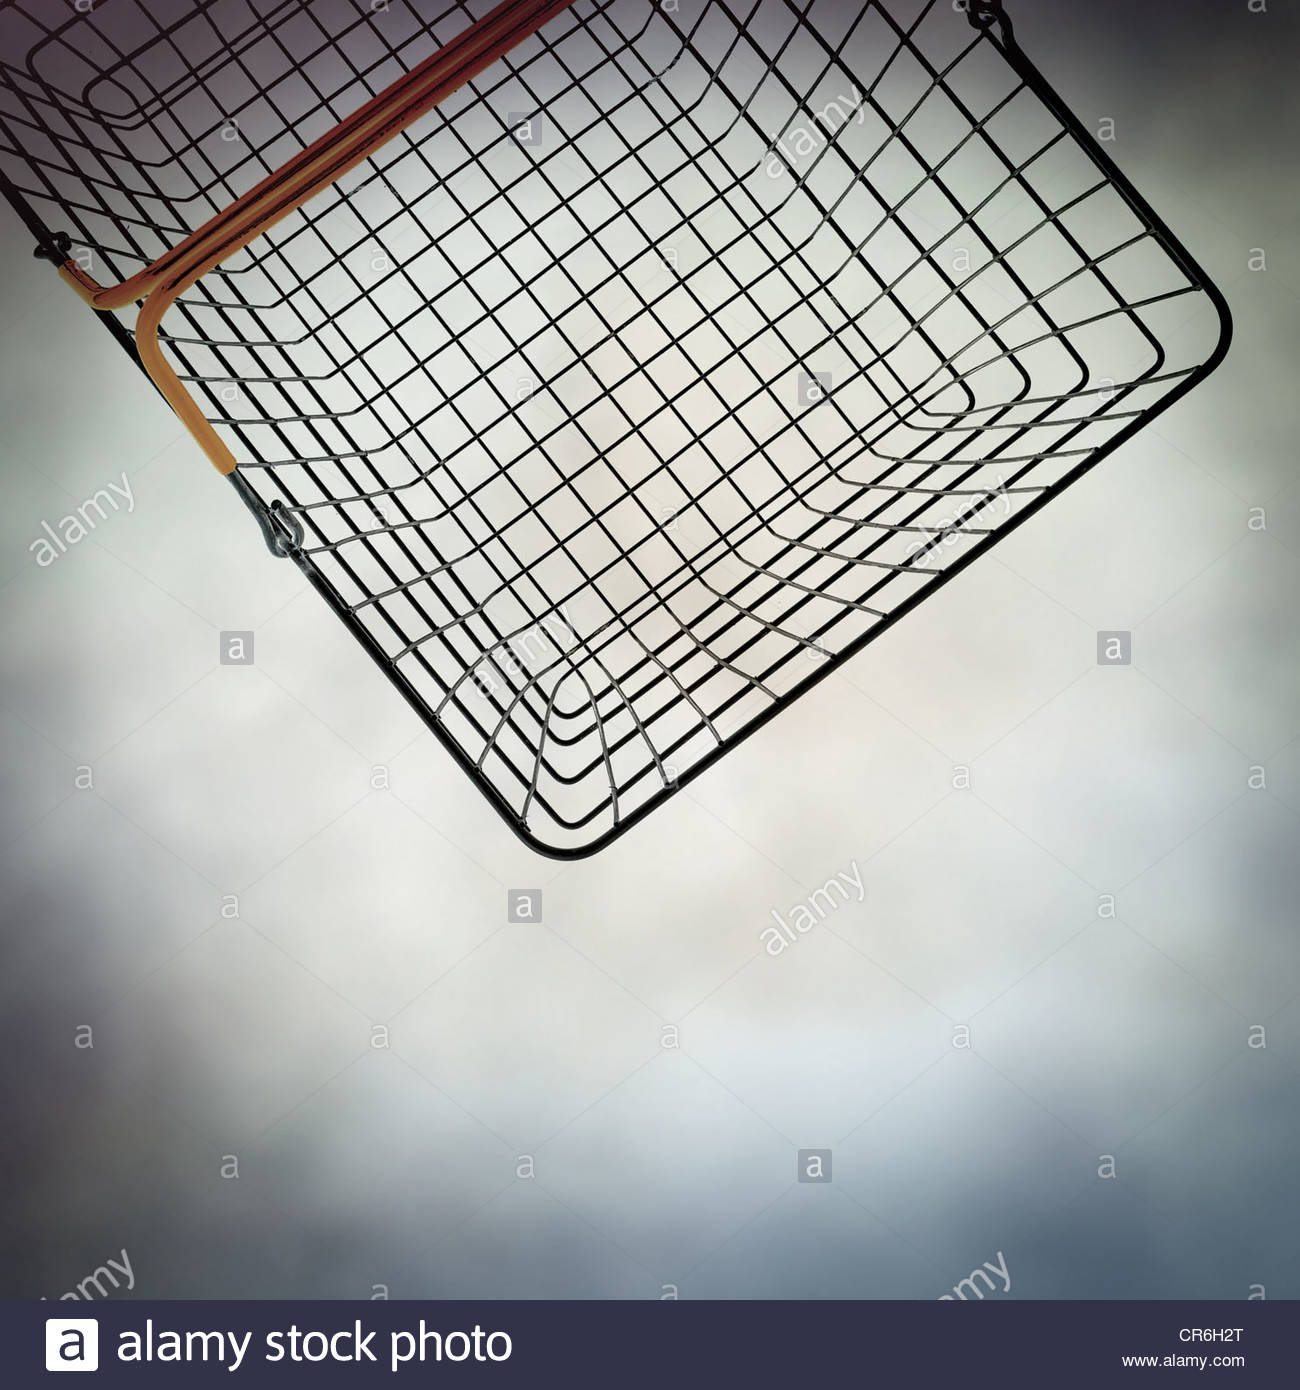 wire basket - Stock Image